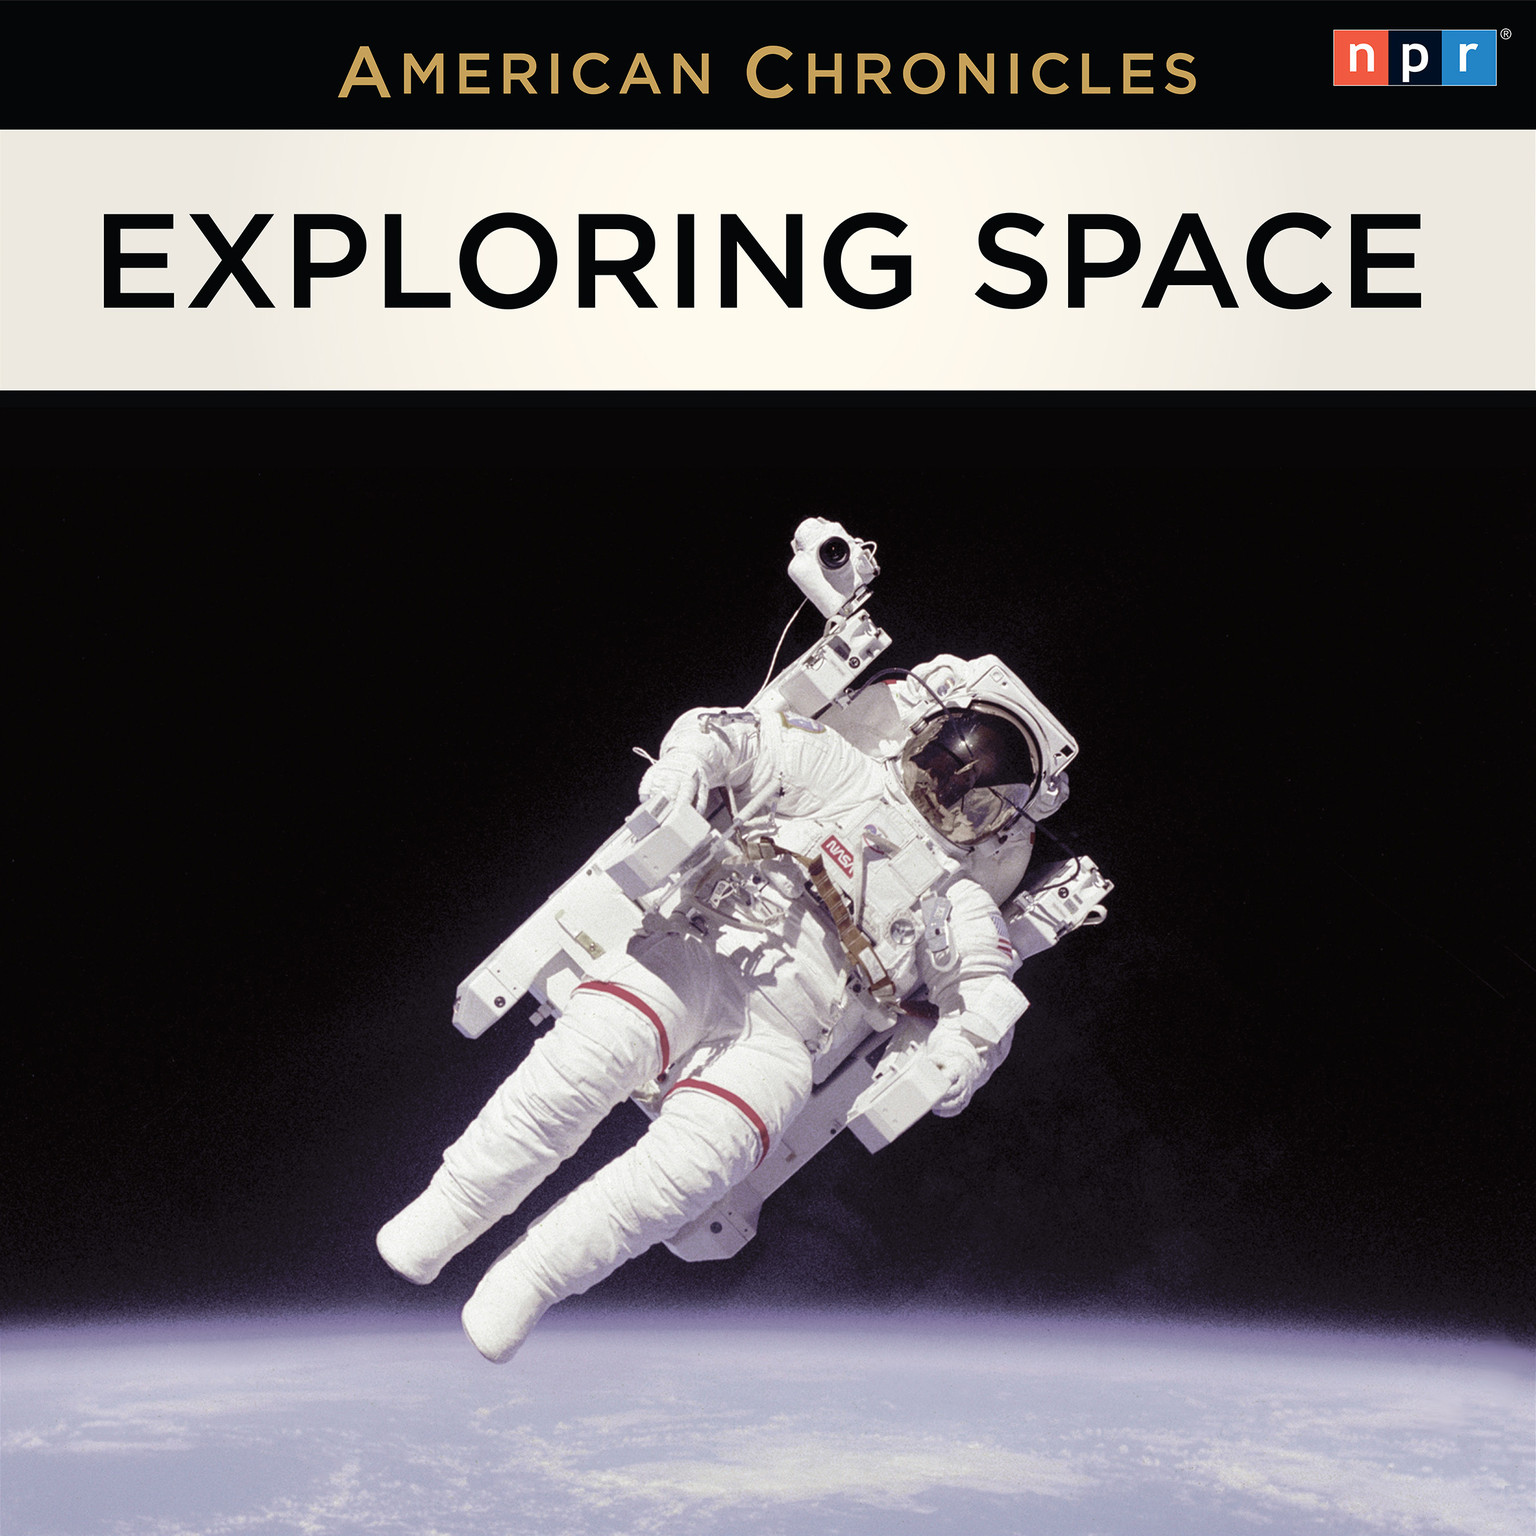 Printable The NPR American Chronicles: Exploring Space Audiobook Cover Art